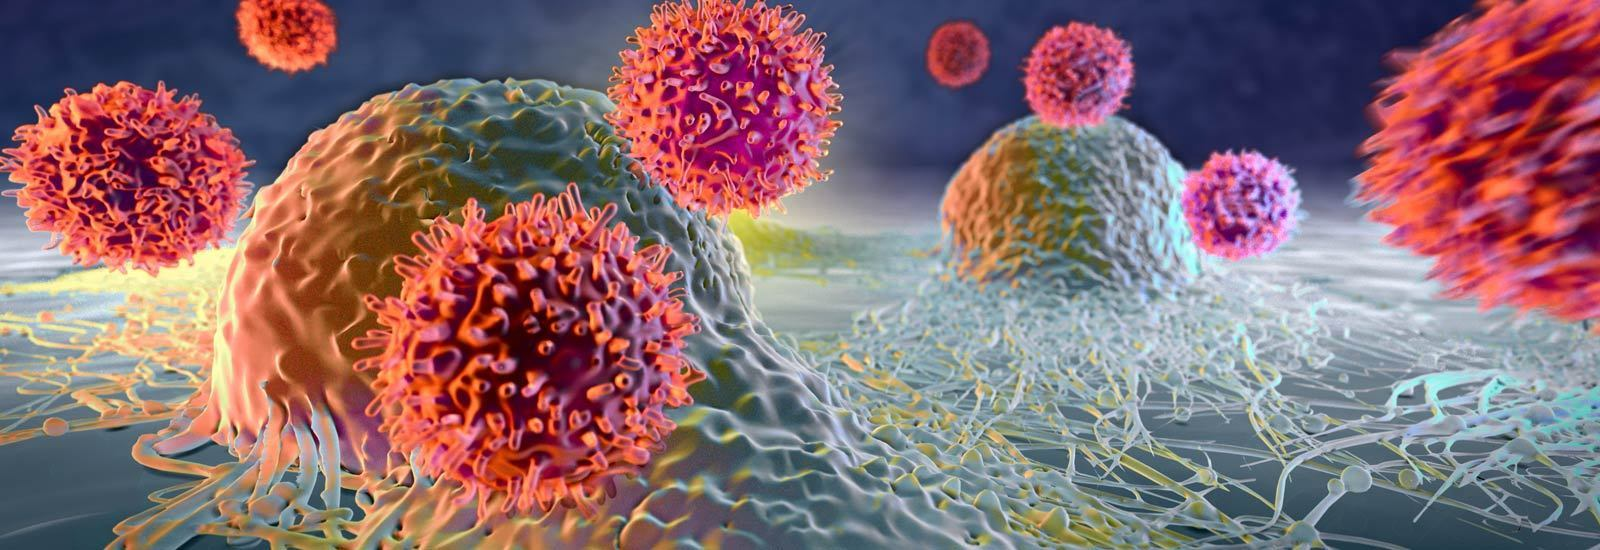 Assays for Immuno-oncology